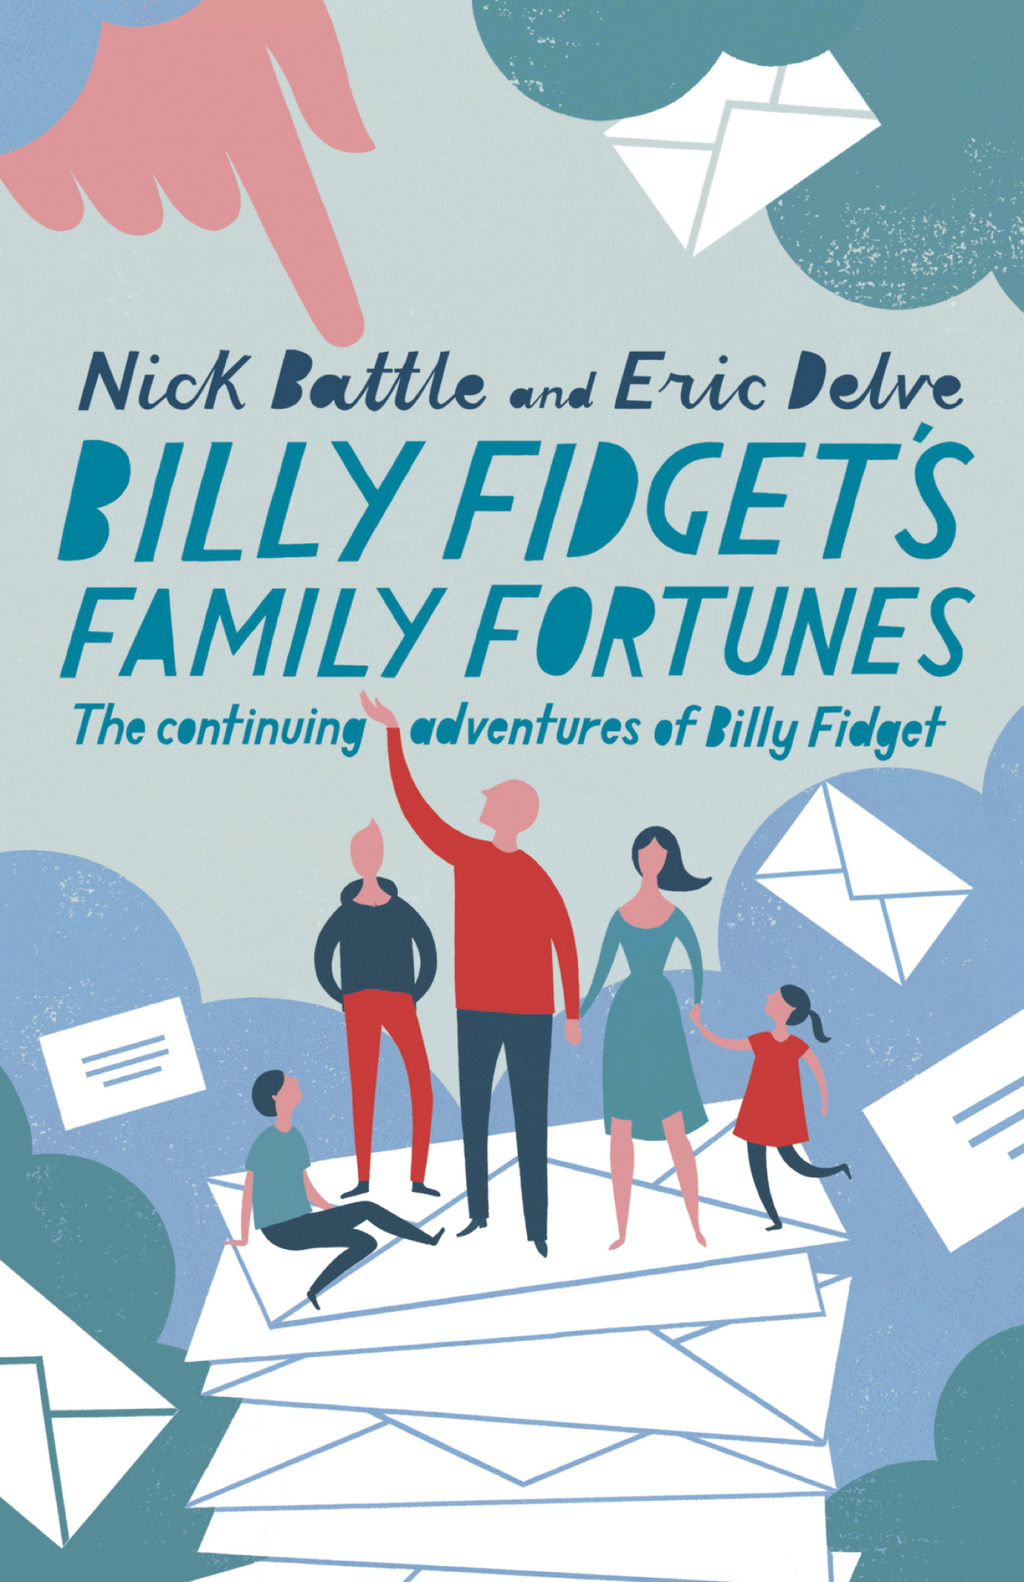 Billy Fidget's Family Fortunes The continuing adventures of Billy Fidget